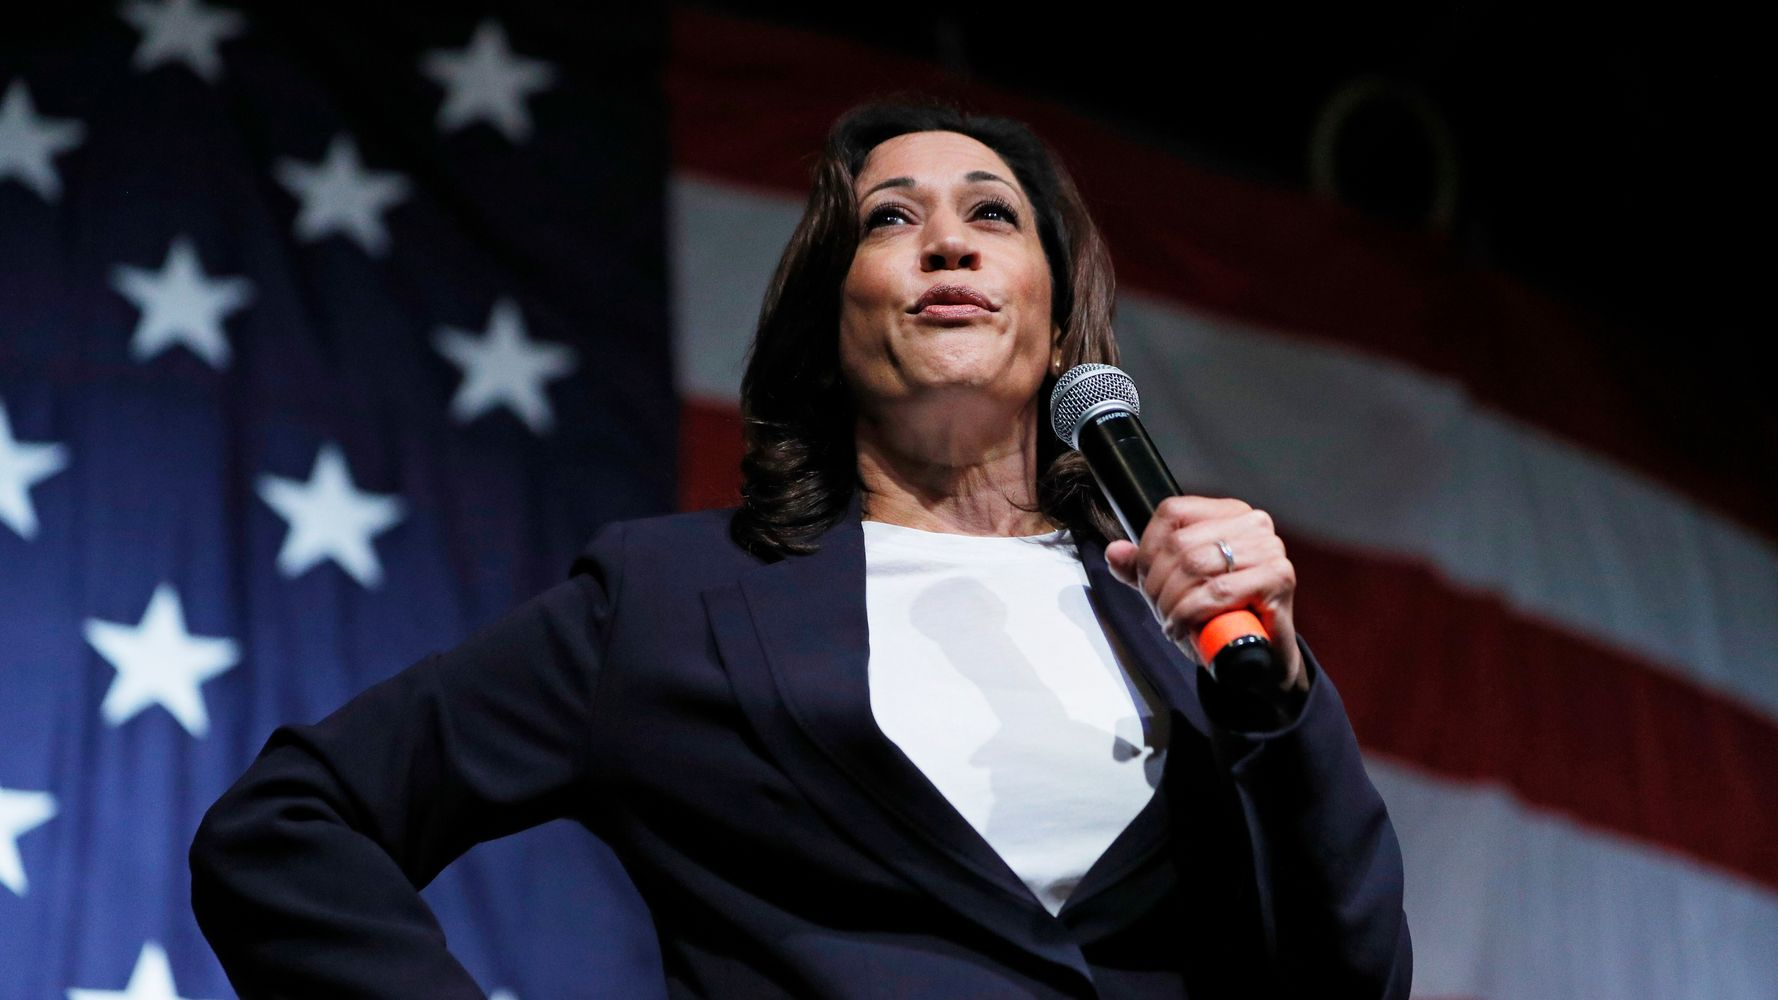 Des Moines Register Editorial Board Calls Kamala Harris 'Formidable' 2020 Opponent